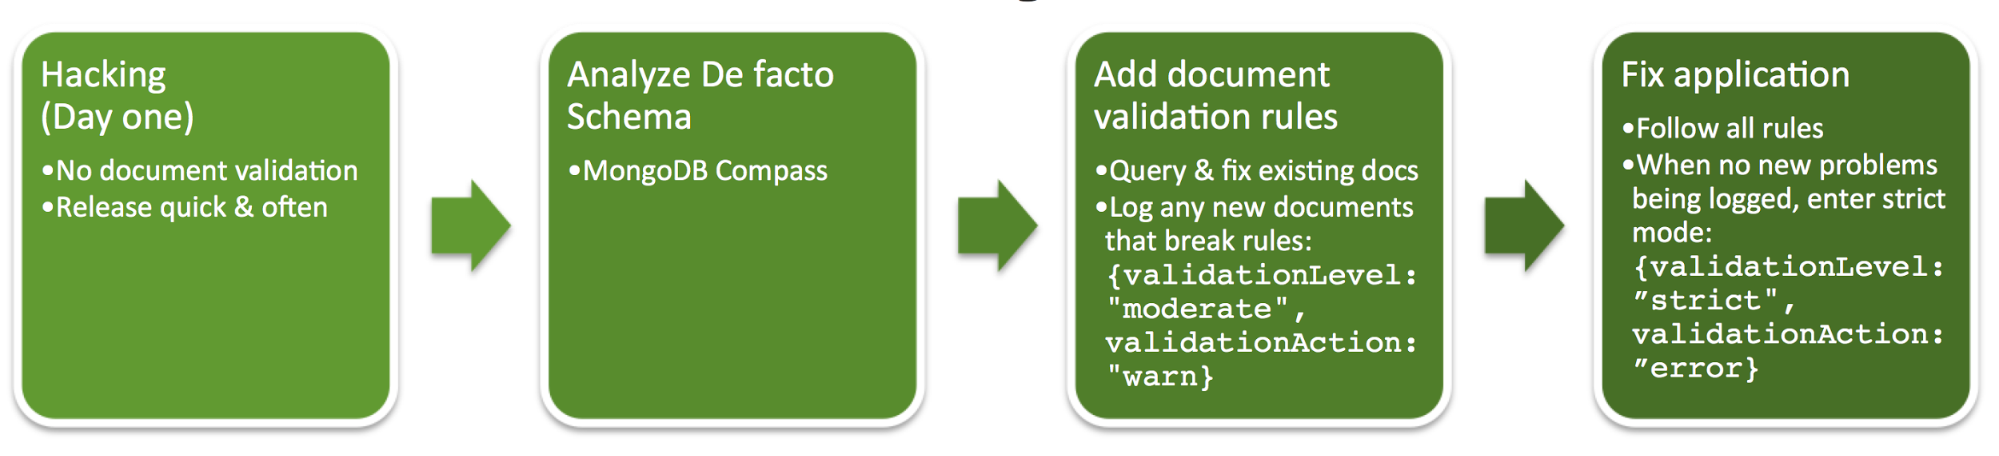 Document Validation - Part 1: Adding Just the Right Amount